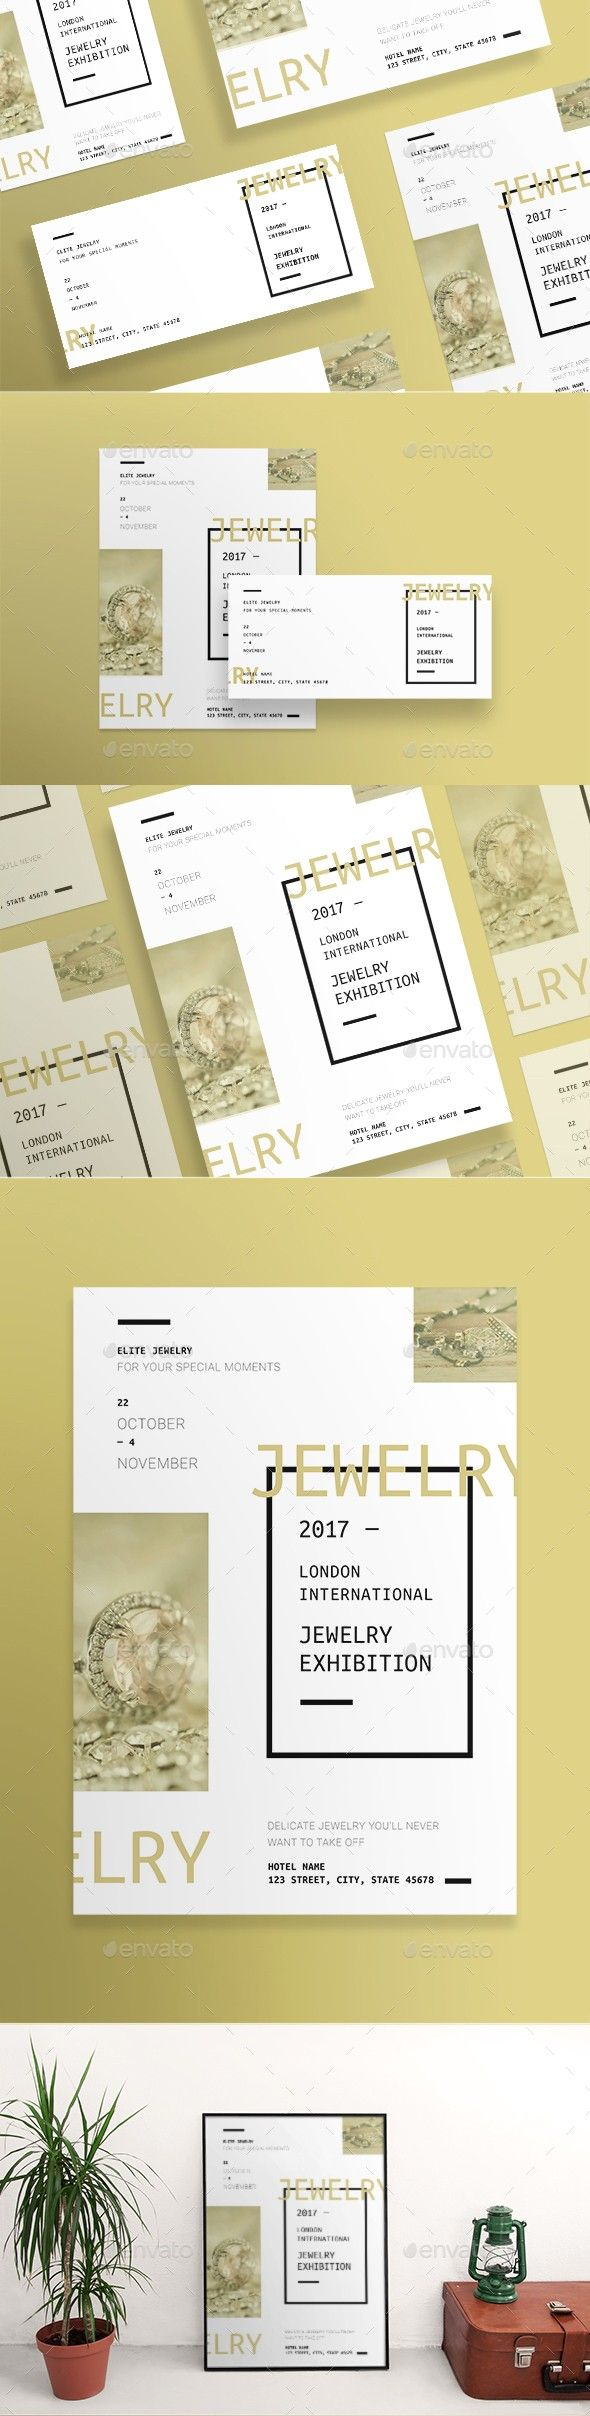 Jewelry exhibition flyers pinterest exhibitions and flyer template stopboris Choice Image